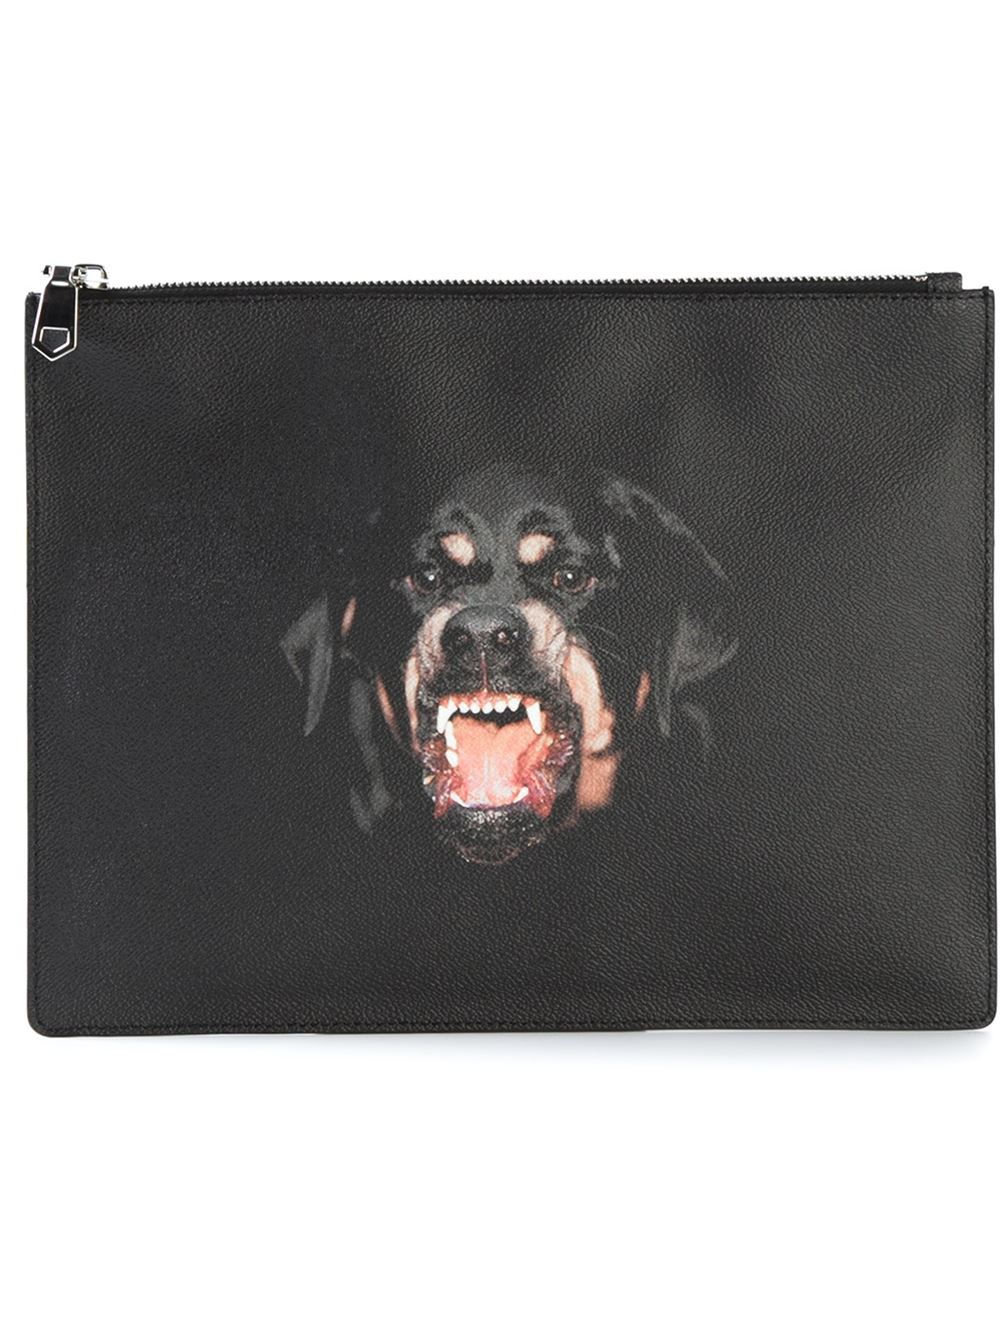 Lyst - Givenchy Rottweiler Print Clutch in Black for Men a2a1409fb6404